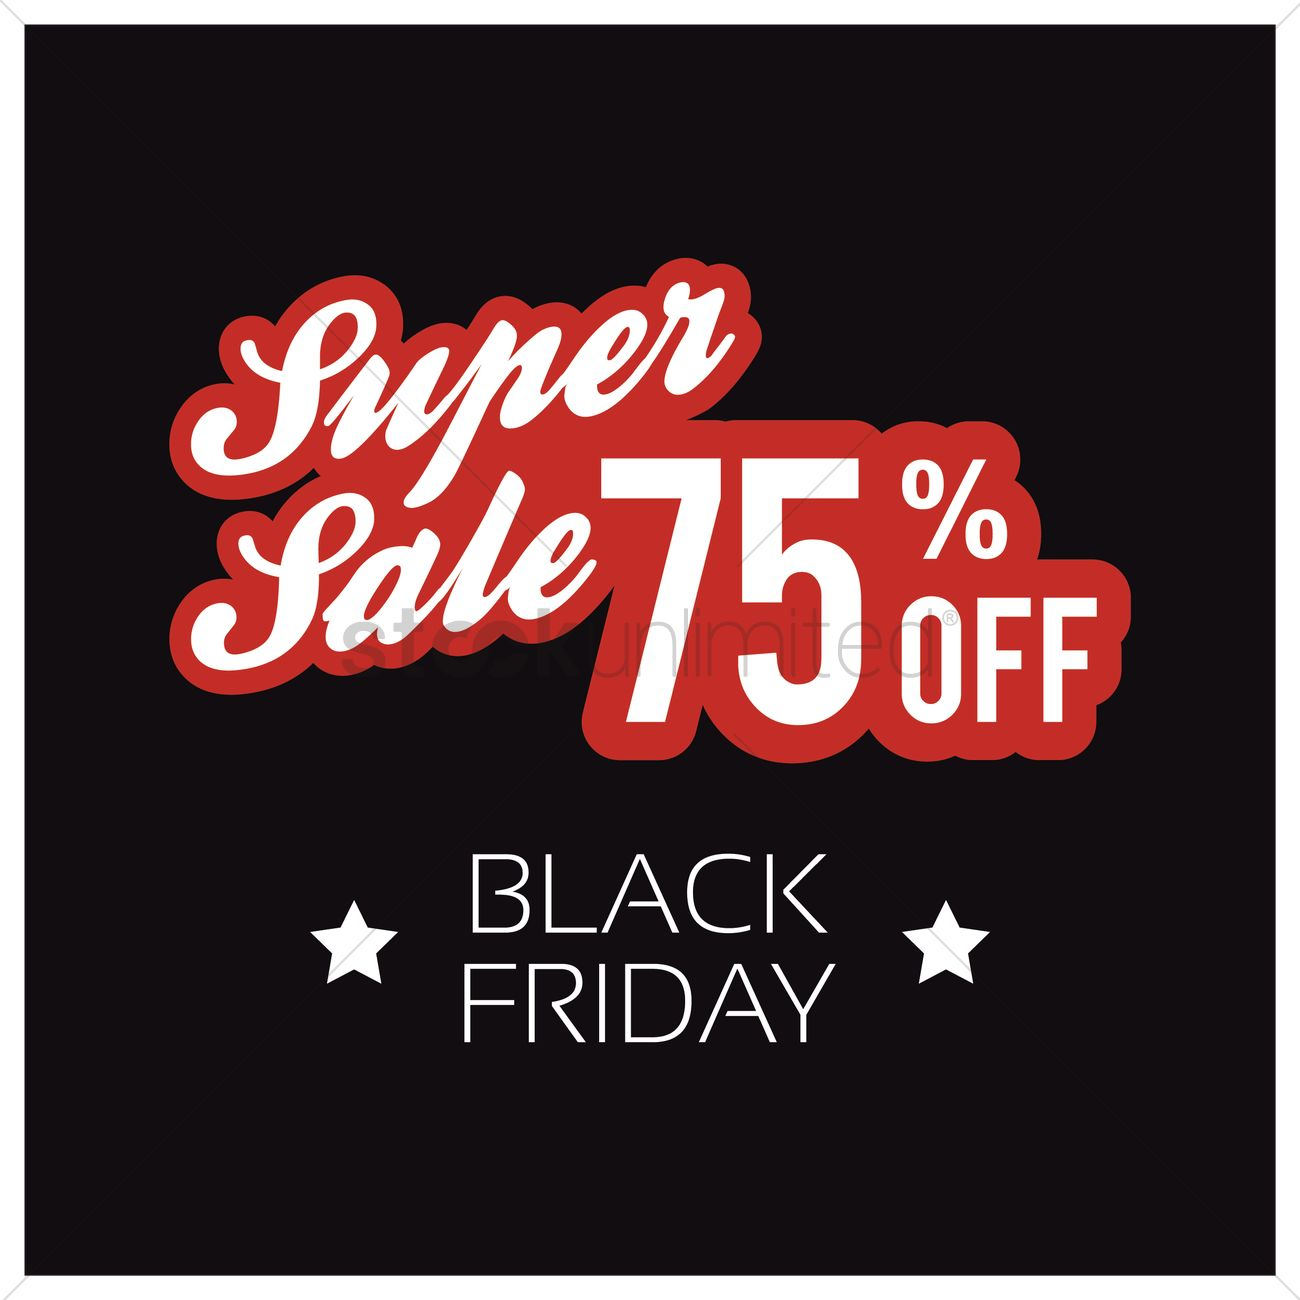 Black friday sale wallpaper Vector Image   1583539 StockUnlimited 1300x1300